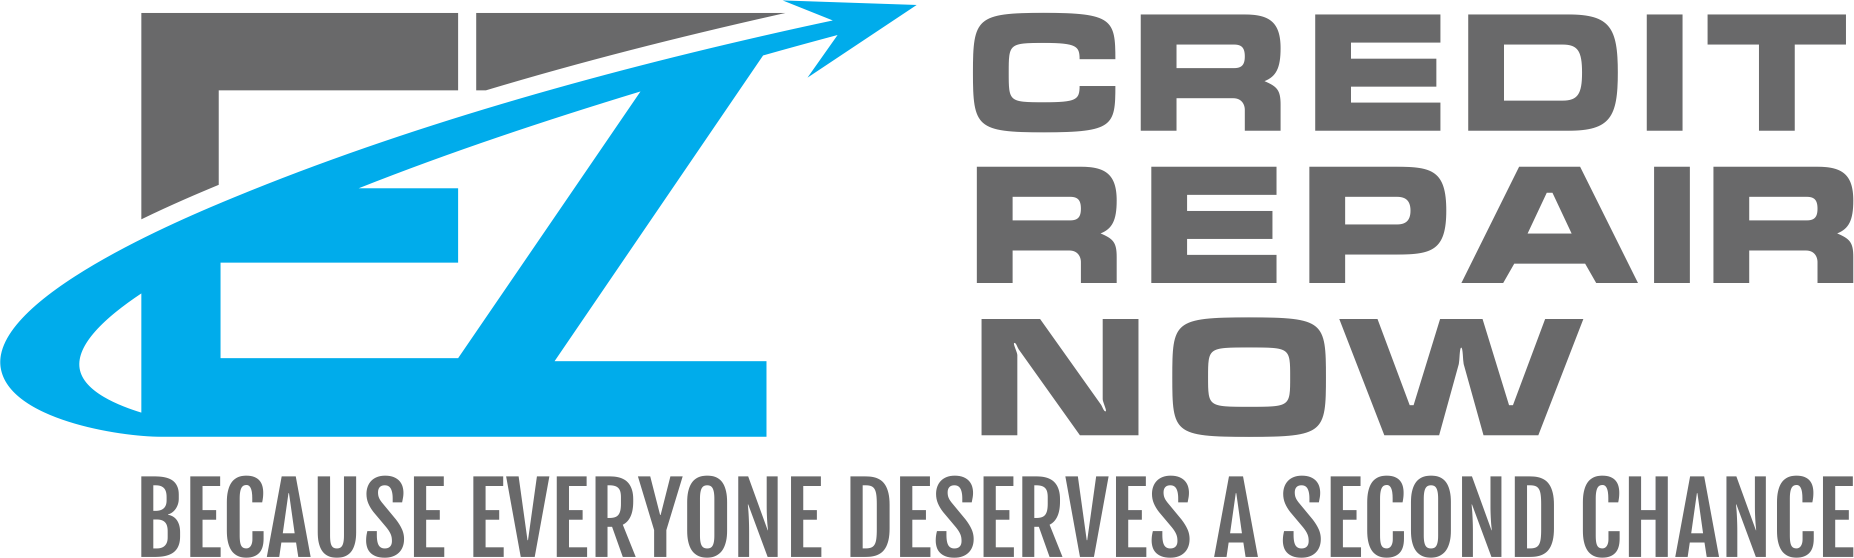 Ez Credit Repair Now